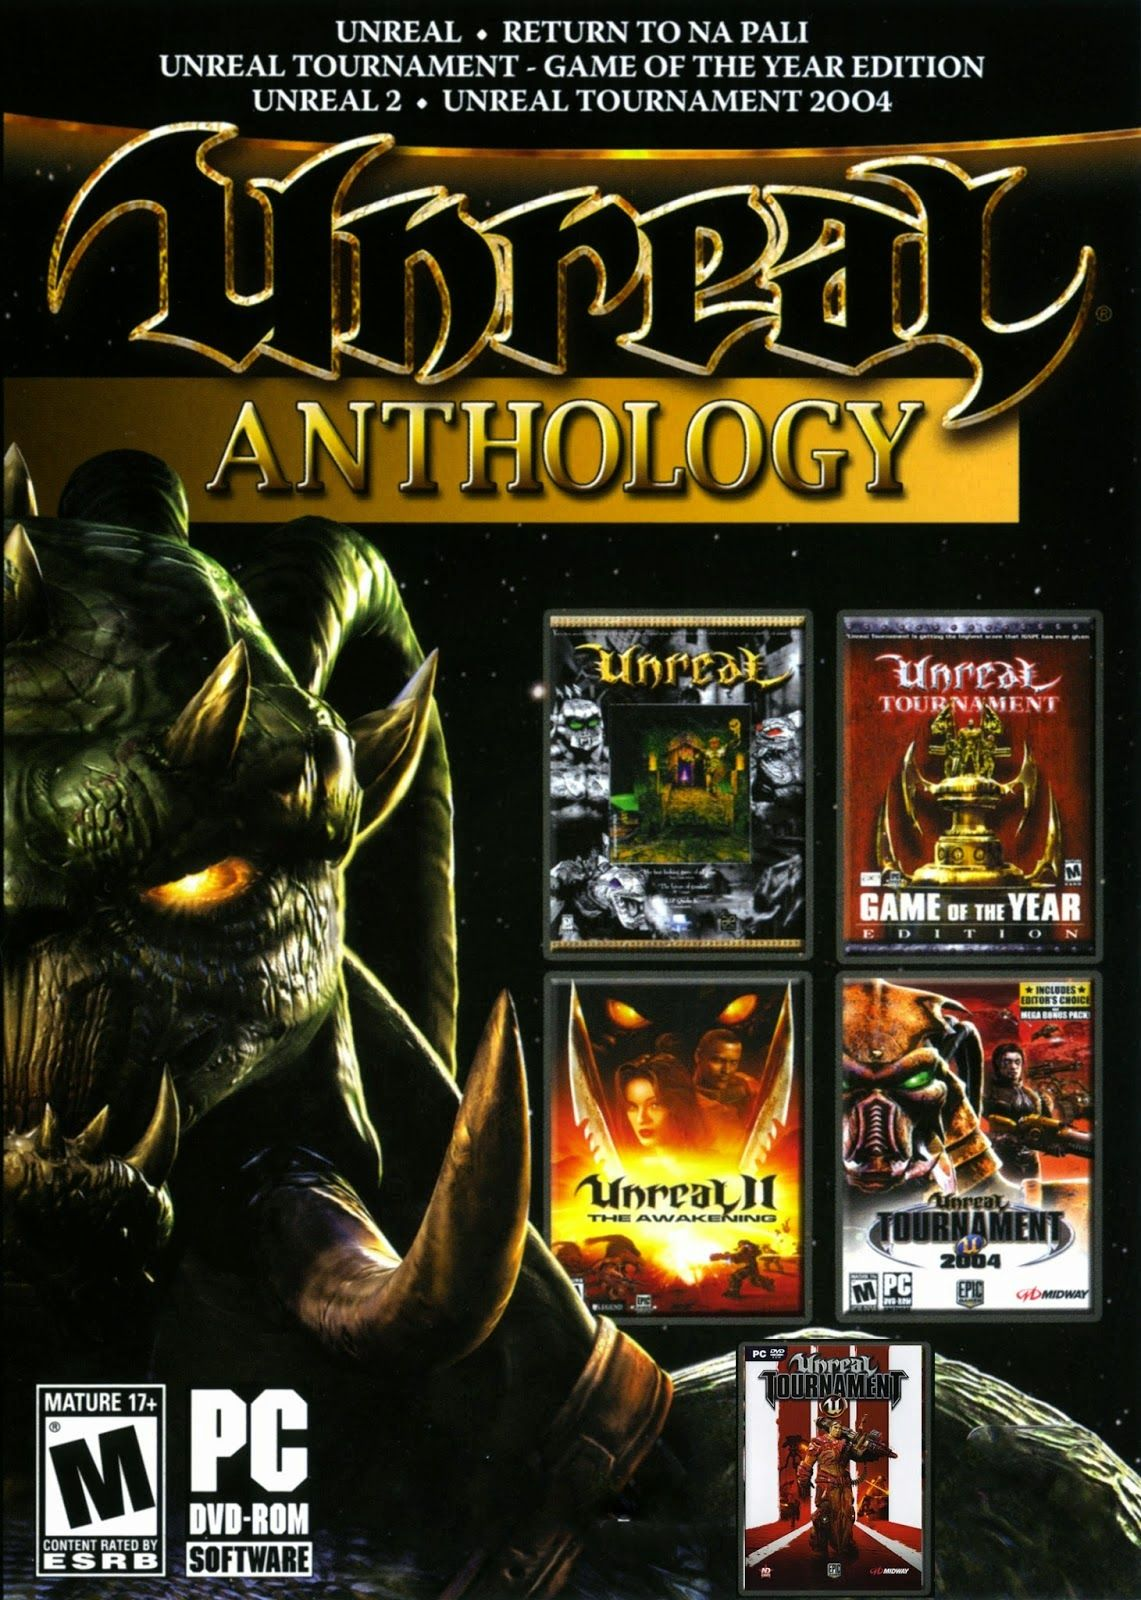 Unreal Anthology PC Game | Anthology, Unreal tournament ...